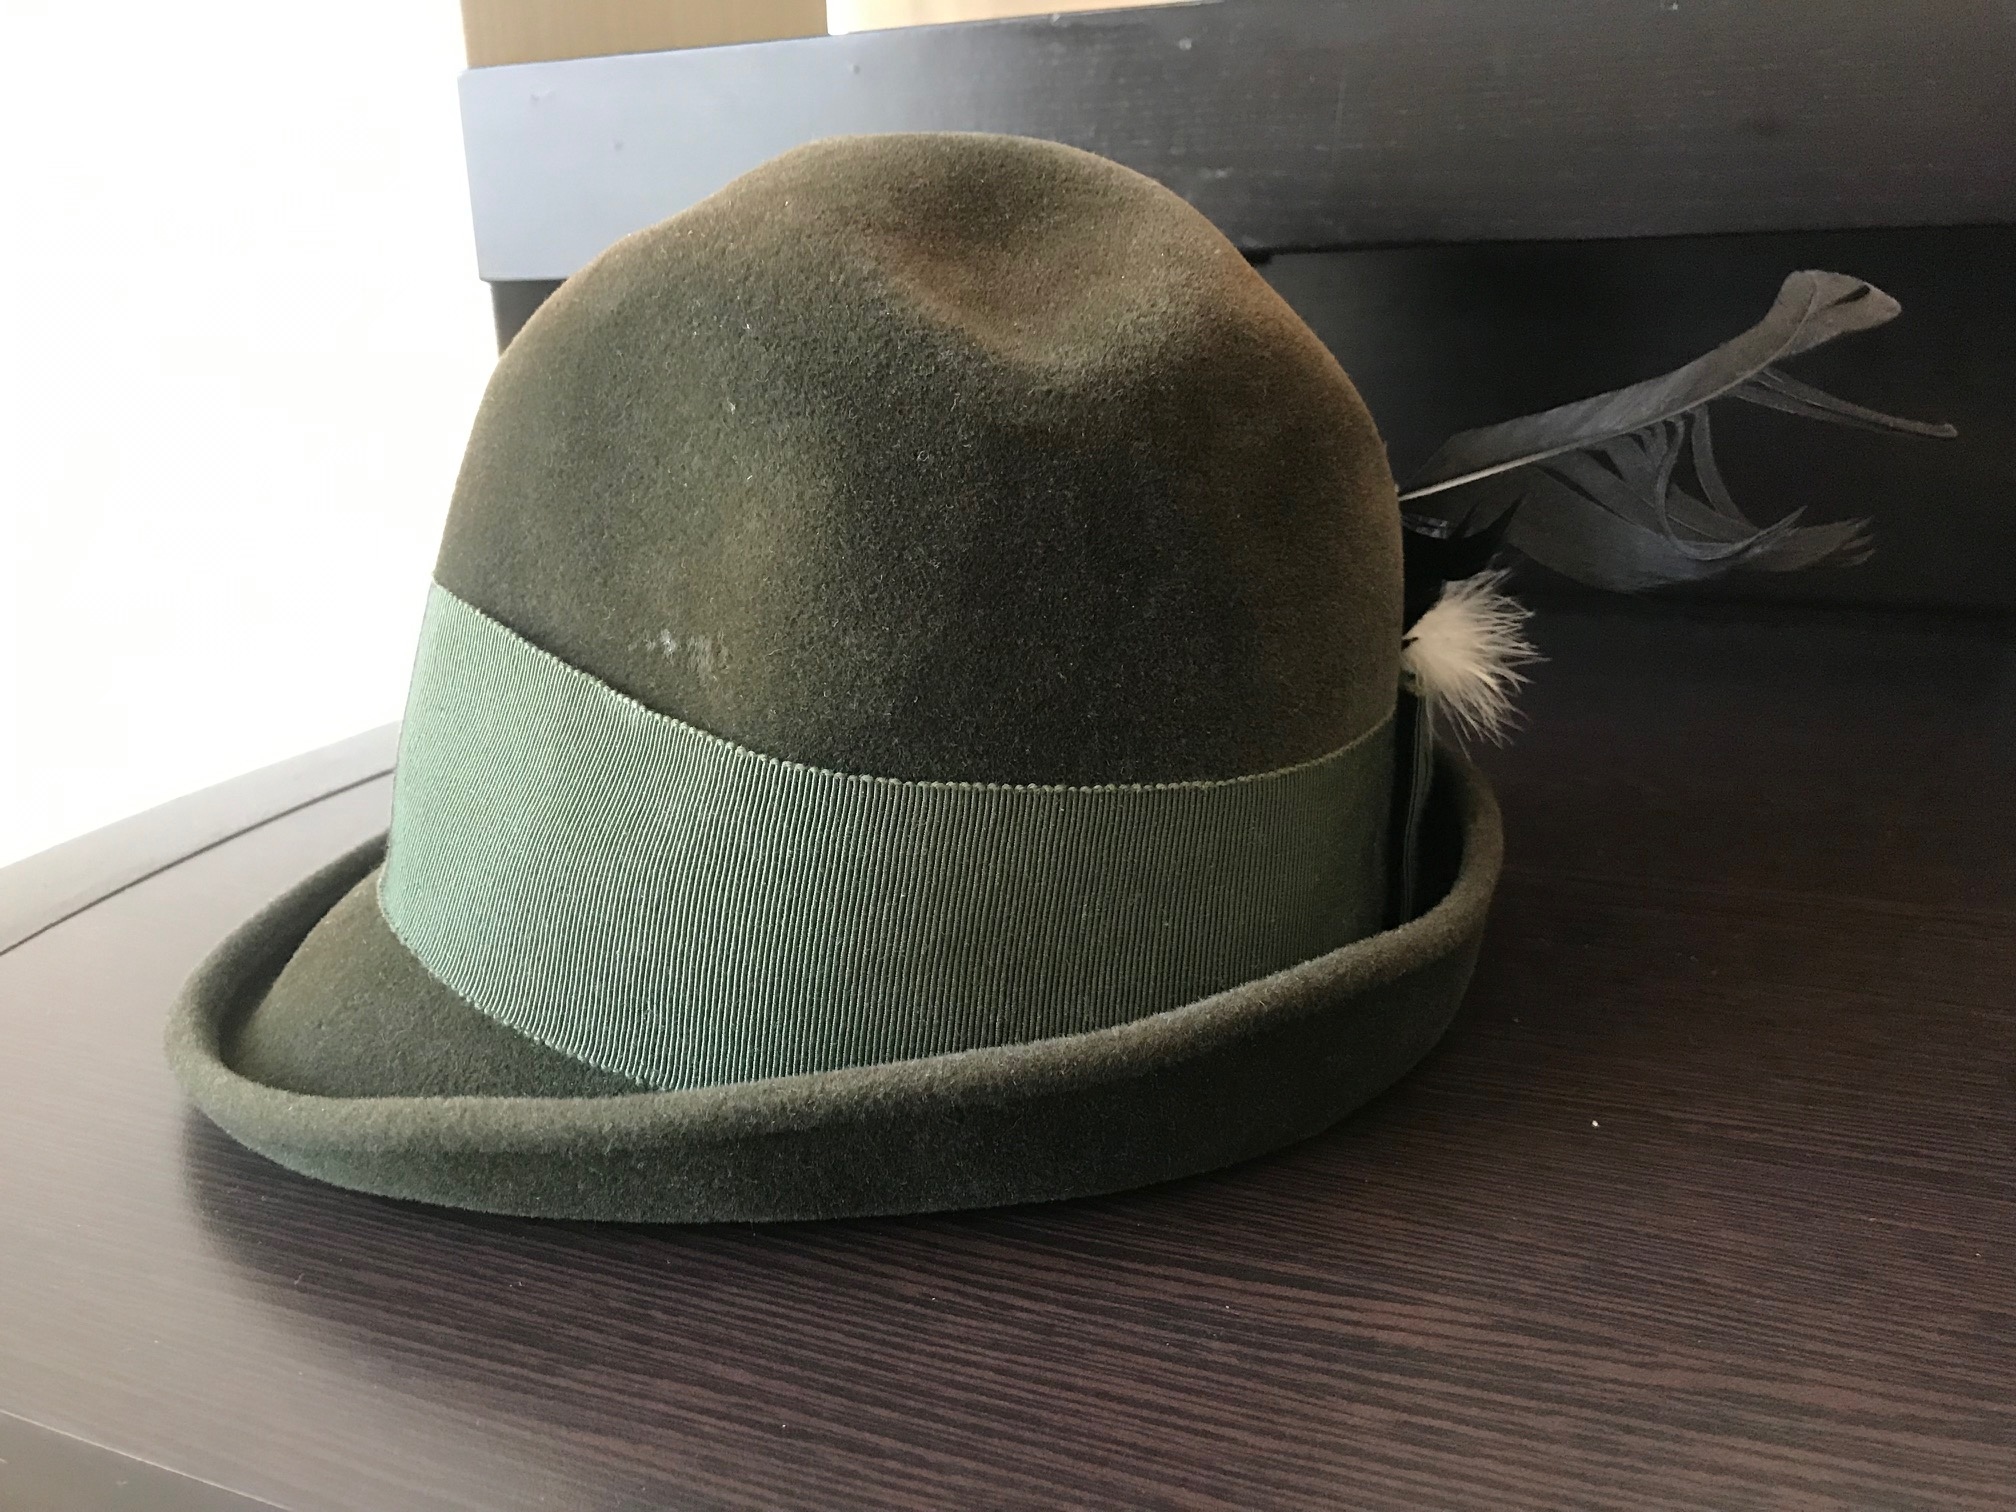 Did you hear how the Mad Hatter got his name? Well here's the evidence, vintage felt hat: 3,844 ppm MERCURY!